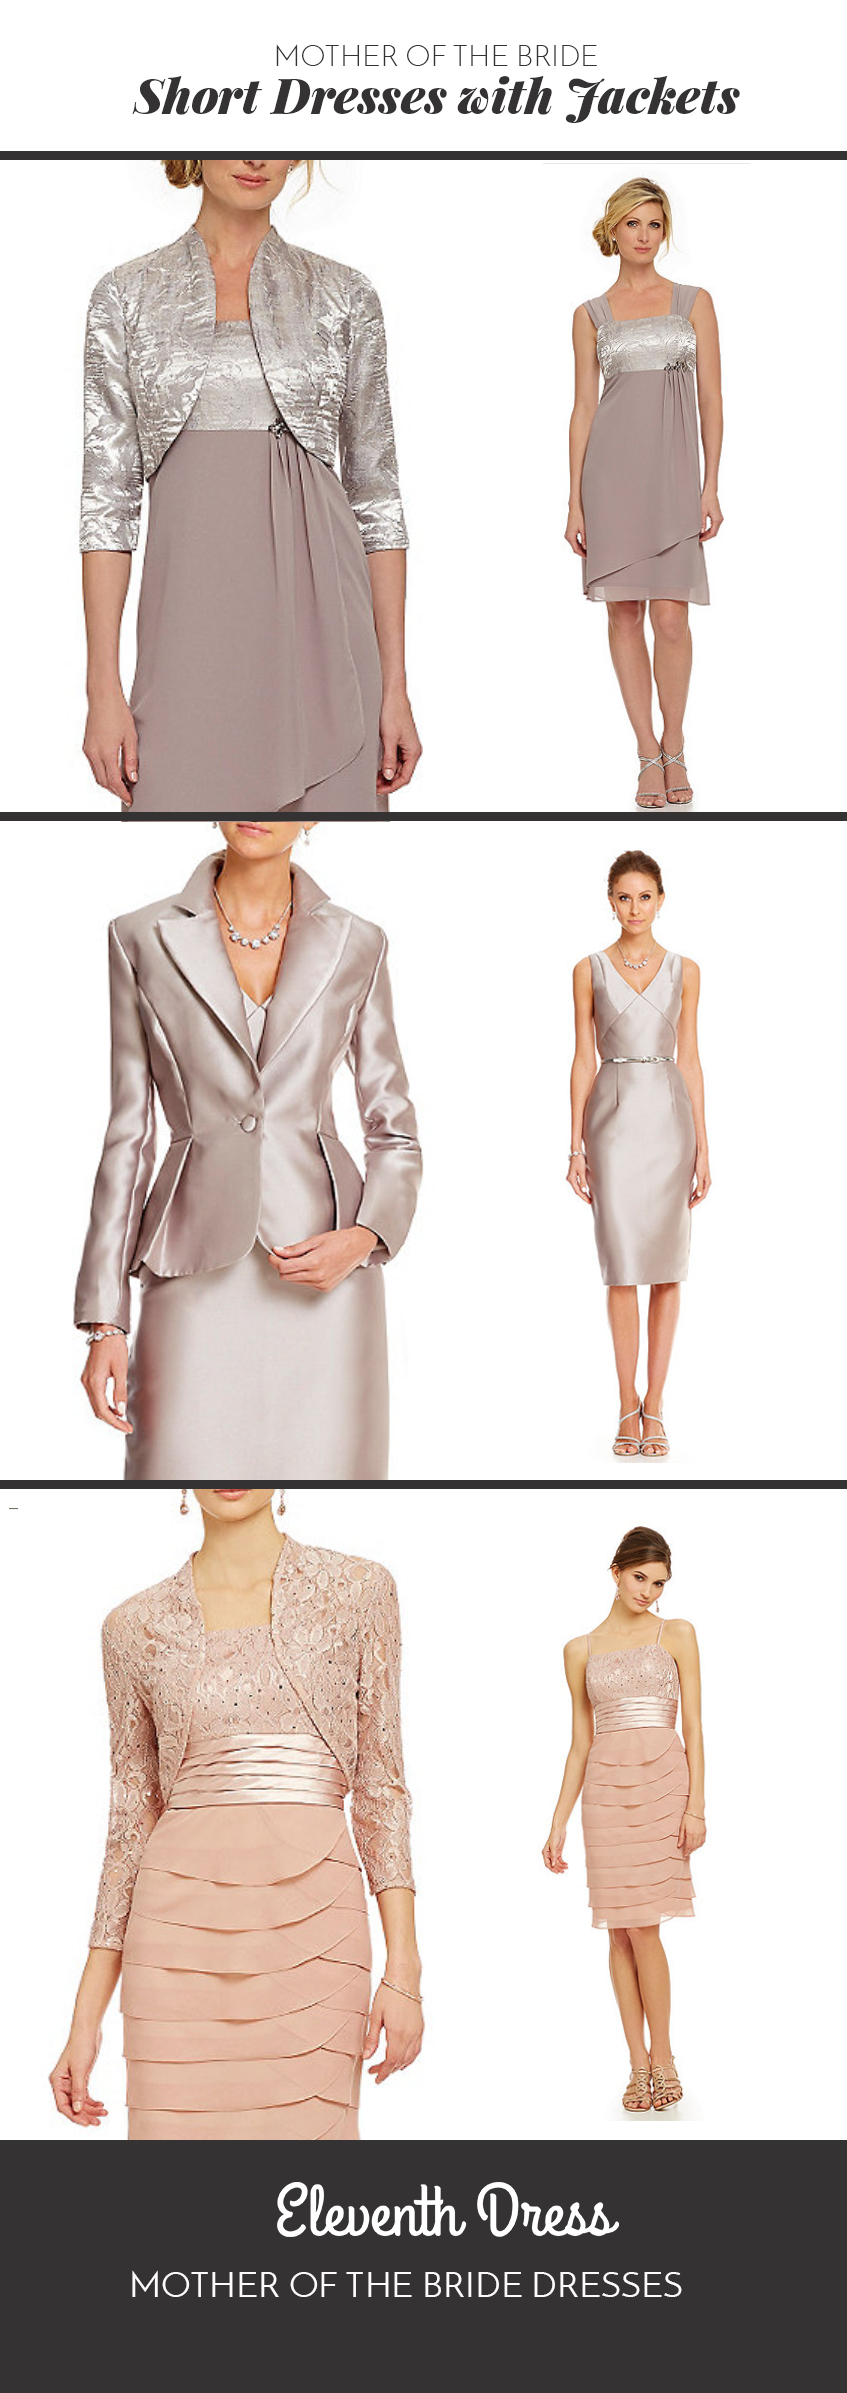 48 Short Mother Of The Bride Dresses With Jackets That You Can Wear To The Wedding Eleventh Dress Mot Mother Of The Bride Dresses Eleven Dress Jacket Dress [ 2393 x 847 Pixel ]